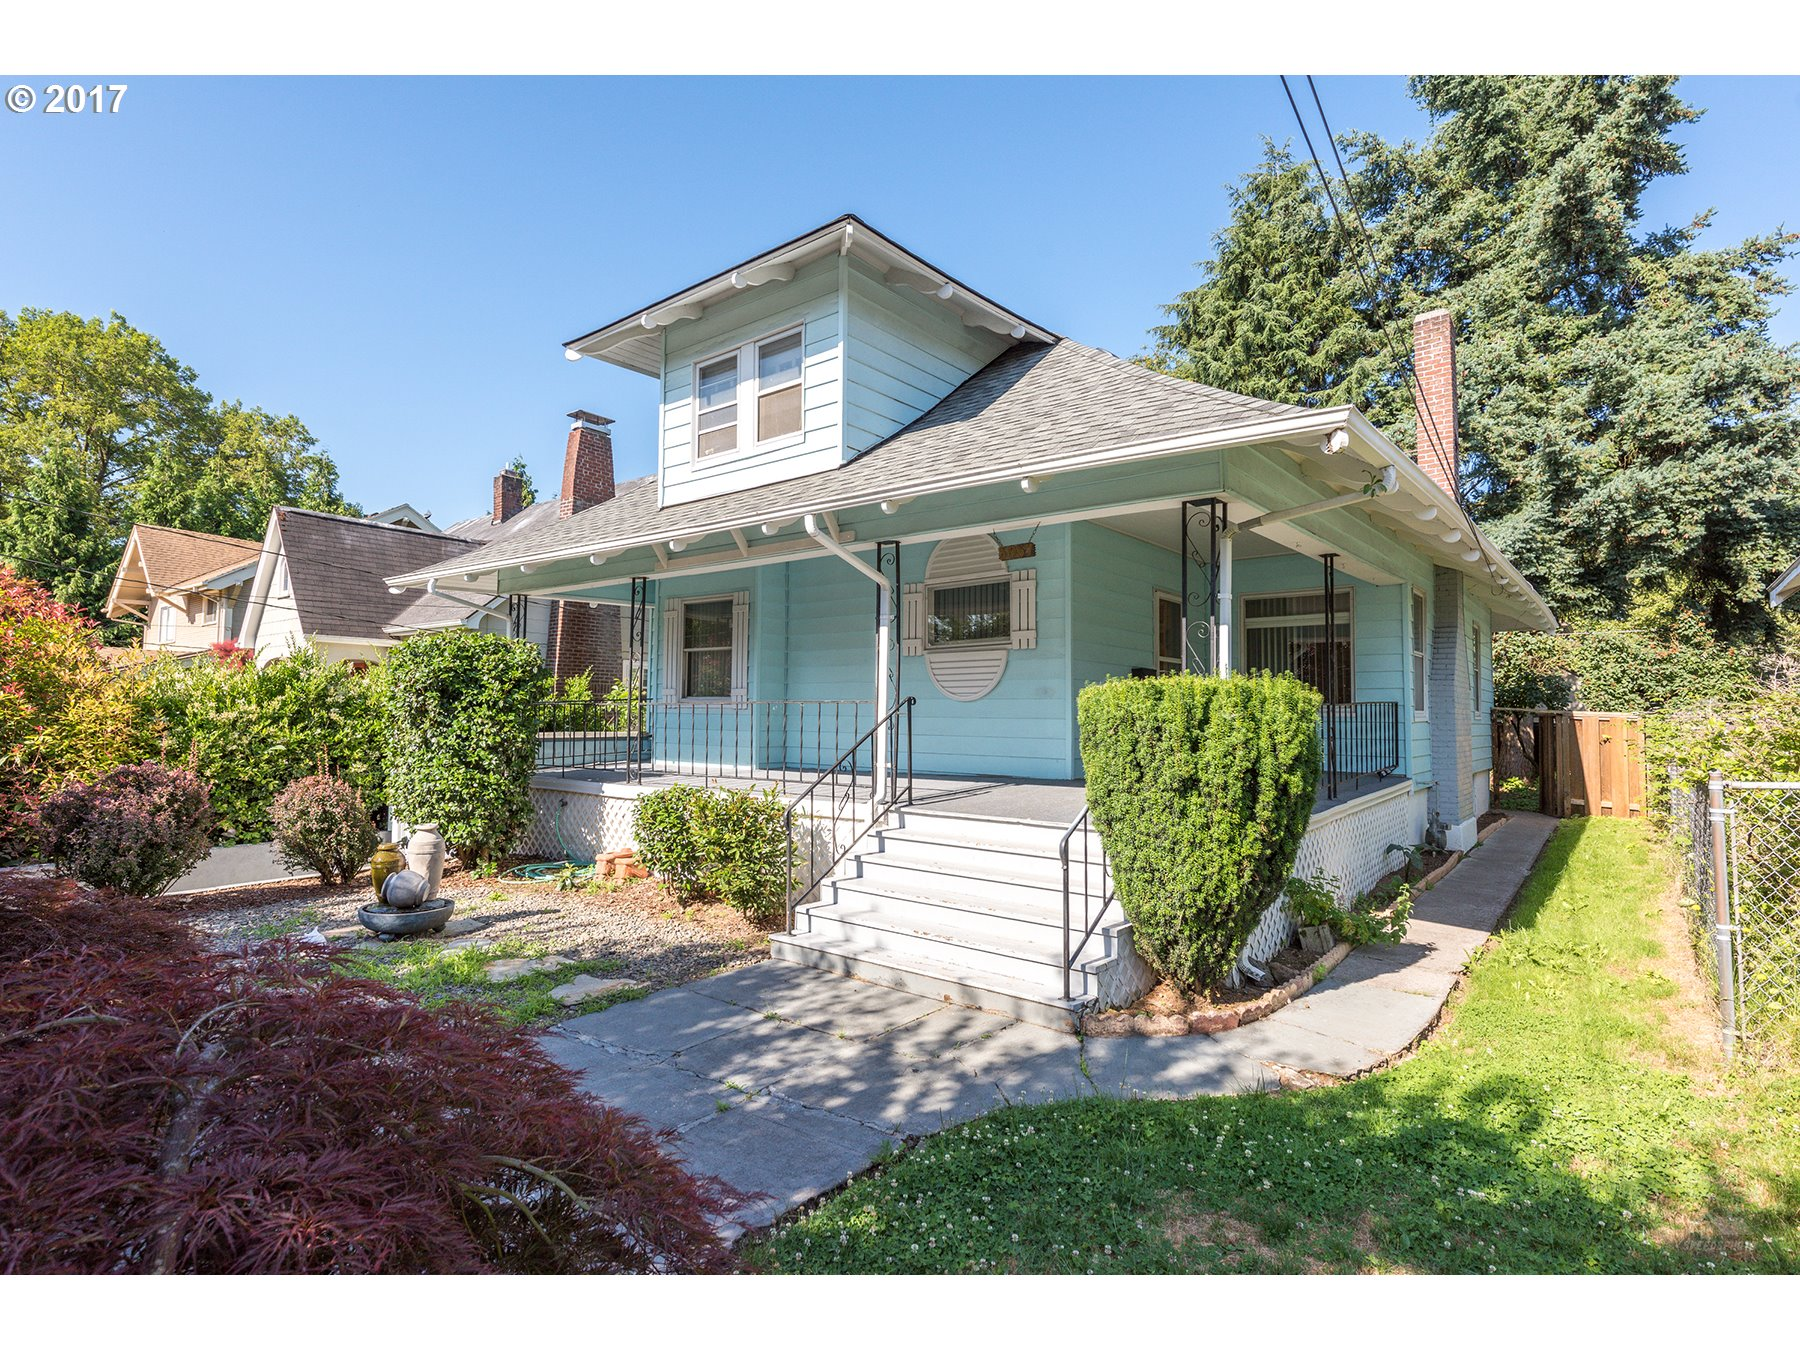 OPEN SUNDAY 4-6PM One of a kind Overlook home just waiting for your personal touches to bring it back to the good life and its original Historic Beauty. This home is located in an established neighborhood on a quiet, tree-lined street. Overlook Park is just minutes away and filled with walking paths and a dog park.  Near the popular Mississippi Entertainment district where Portland class entertainment and 4-star restaurants are found